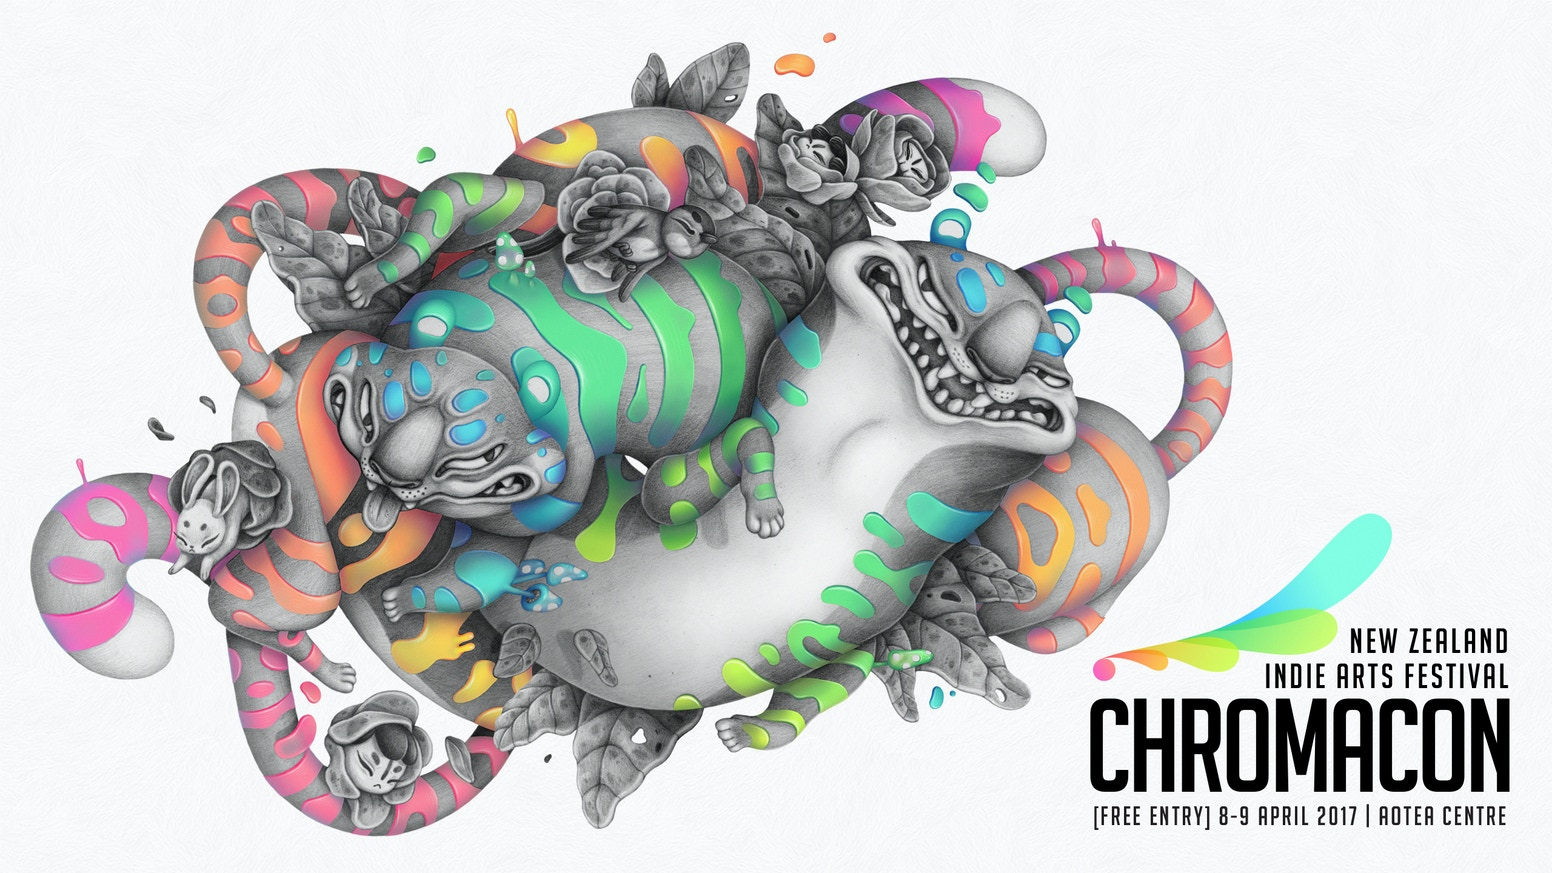 Chromacon is a free New Zealand Arts Festival that showcases illustration, comics, animation, videogames and more from indie creatives.